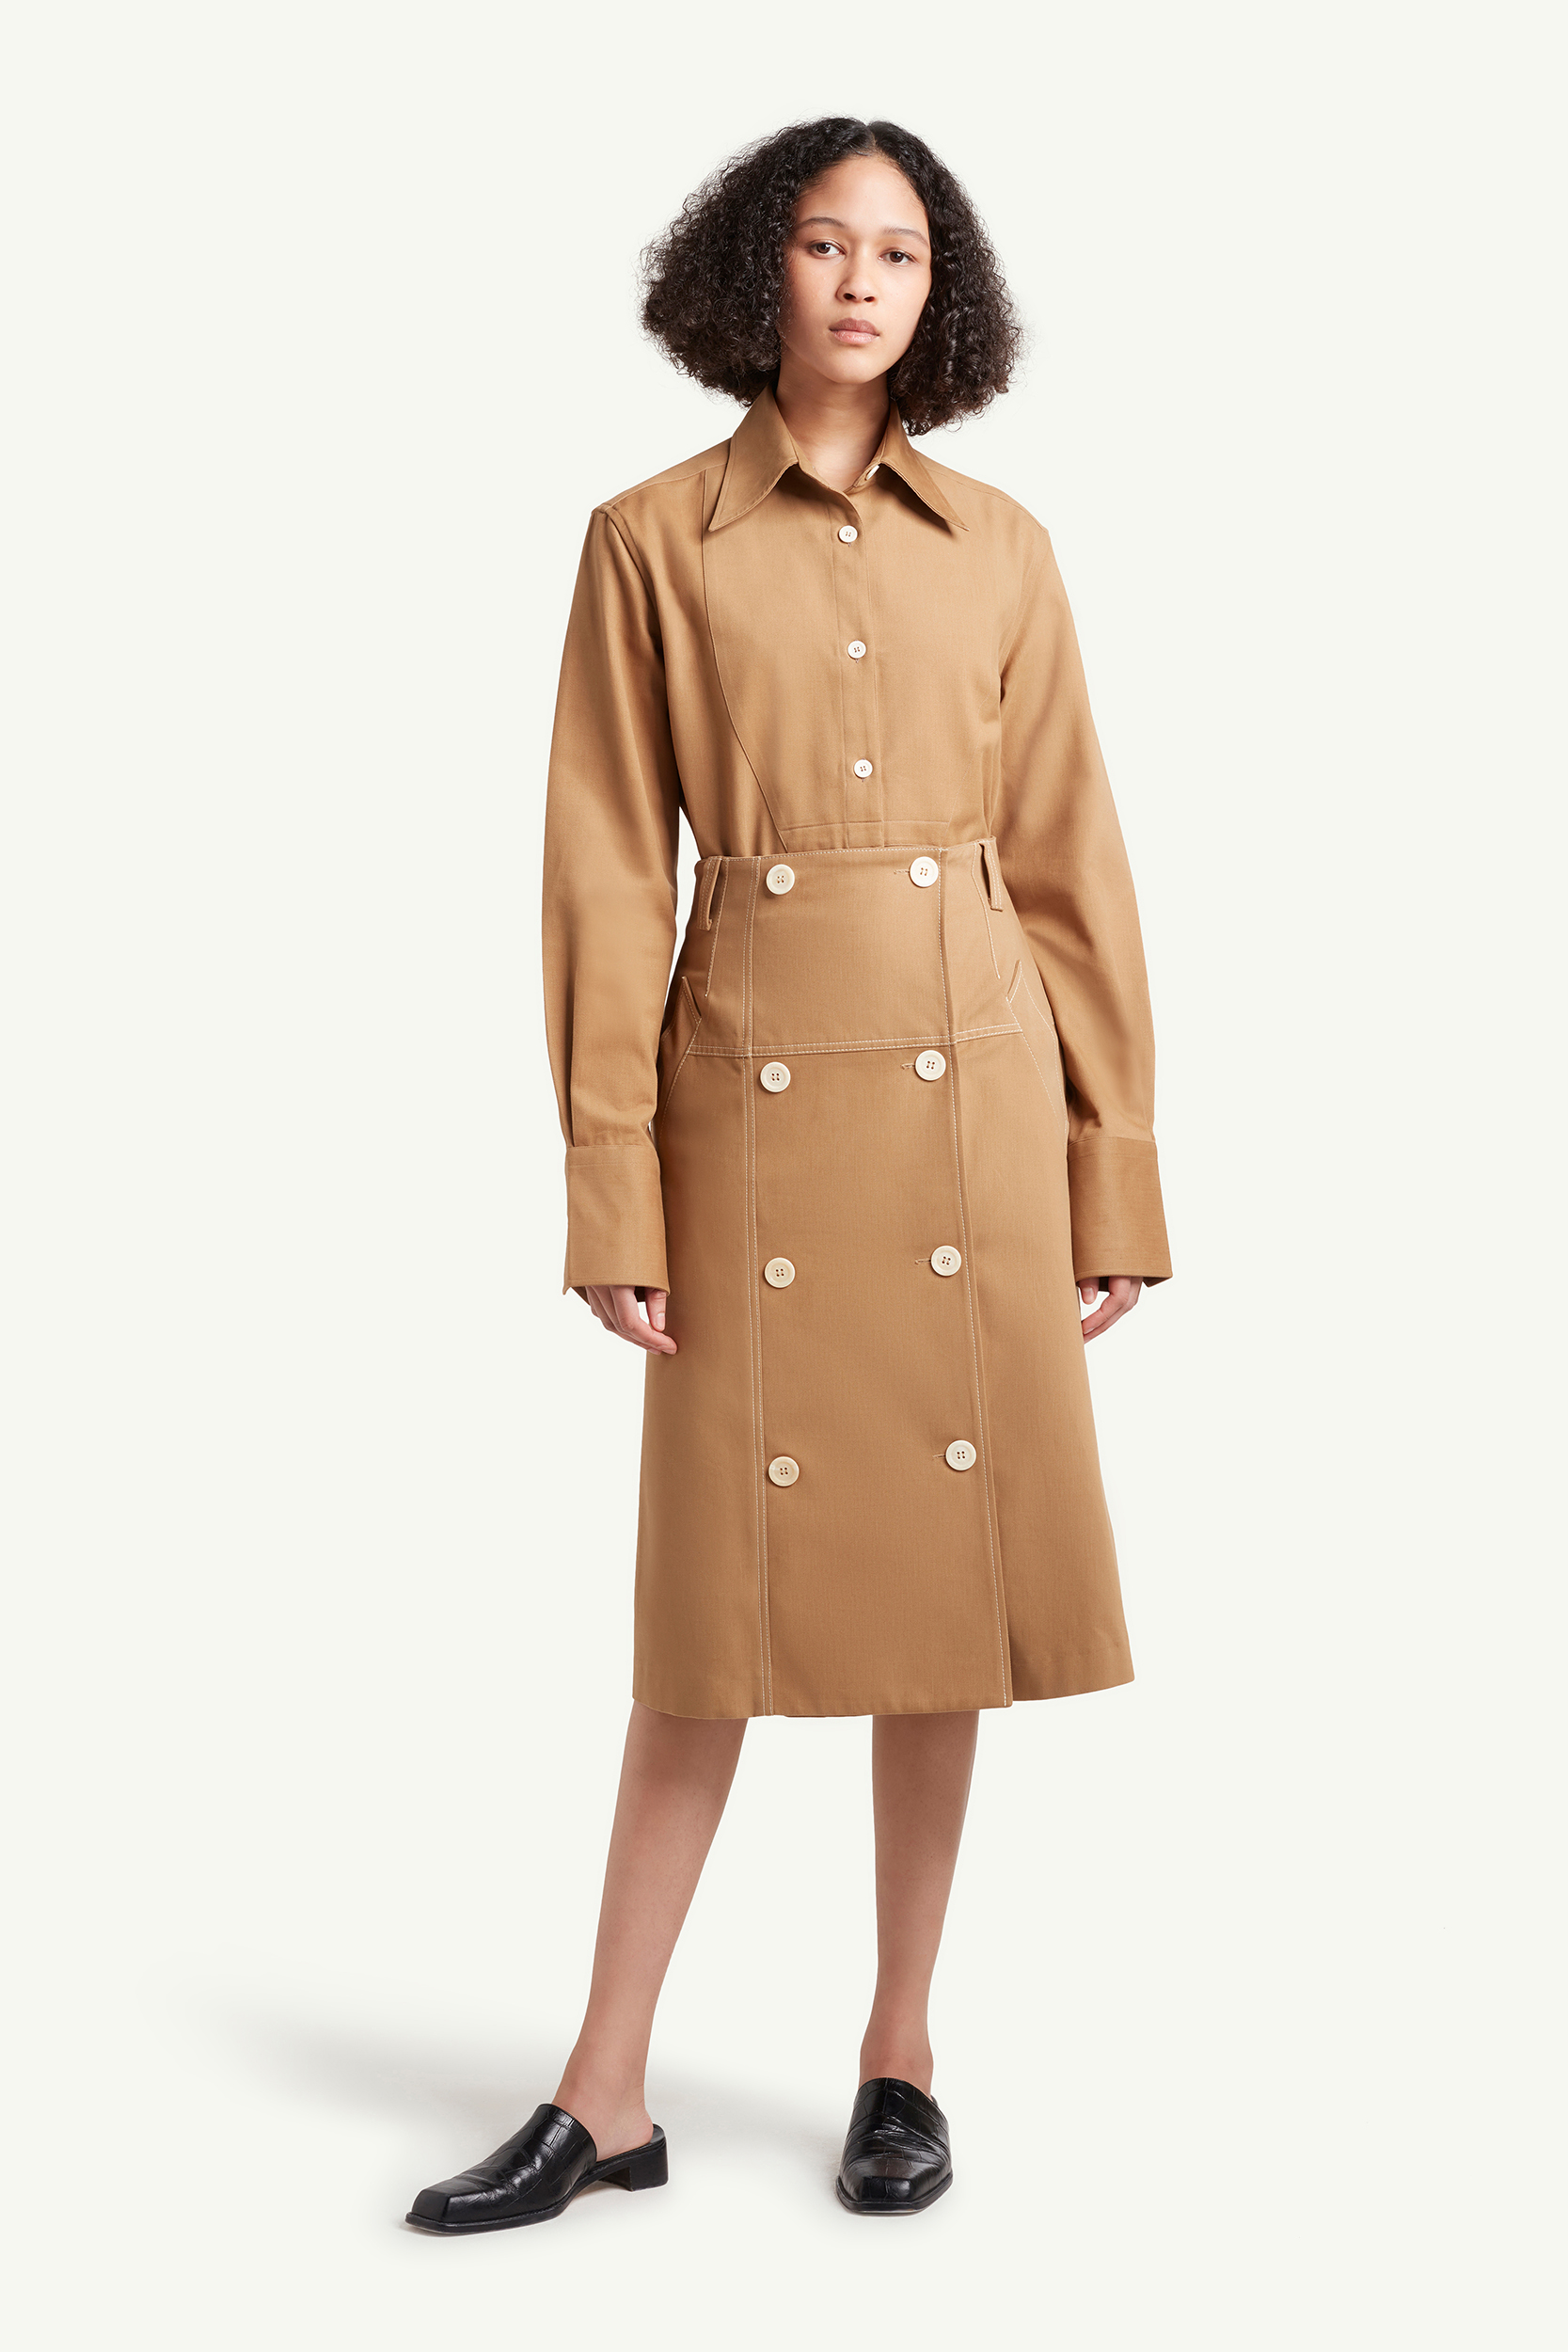 Womenswear model wearing light brown Wales Bonner dress with white buttons | e-Commerce Photography London | LRP